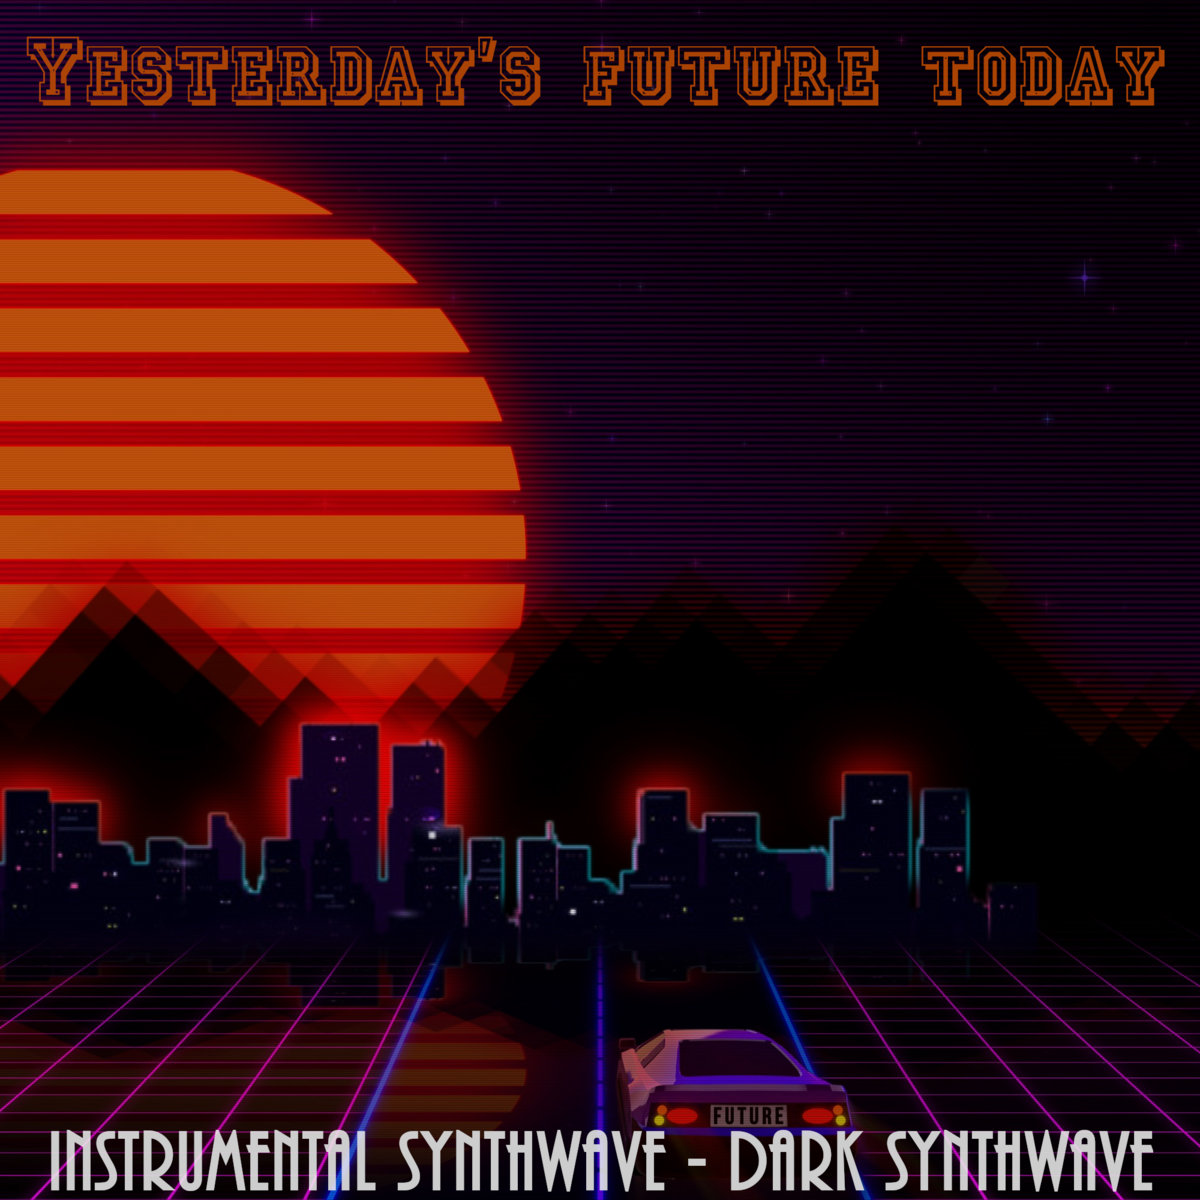 Yesterday's Future Today | Cool Cat Game Studio